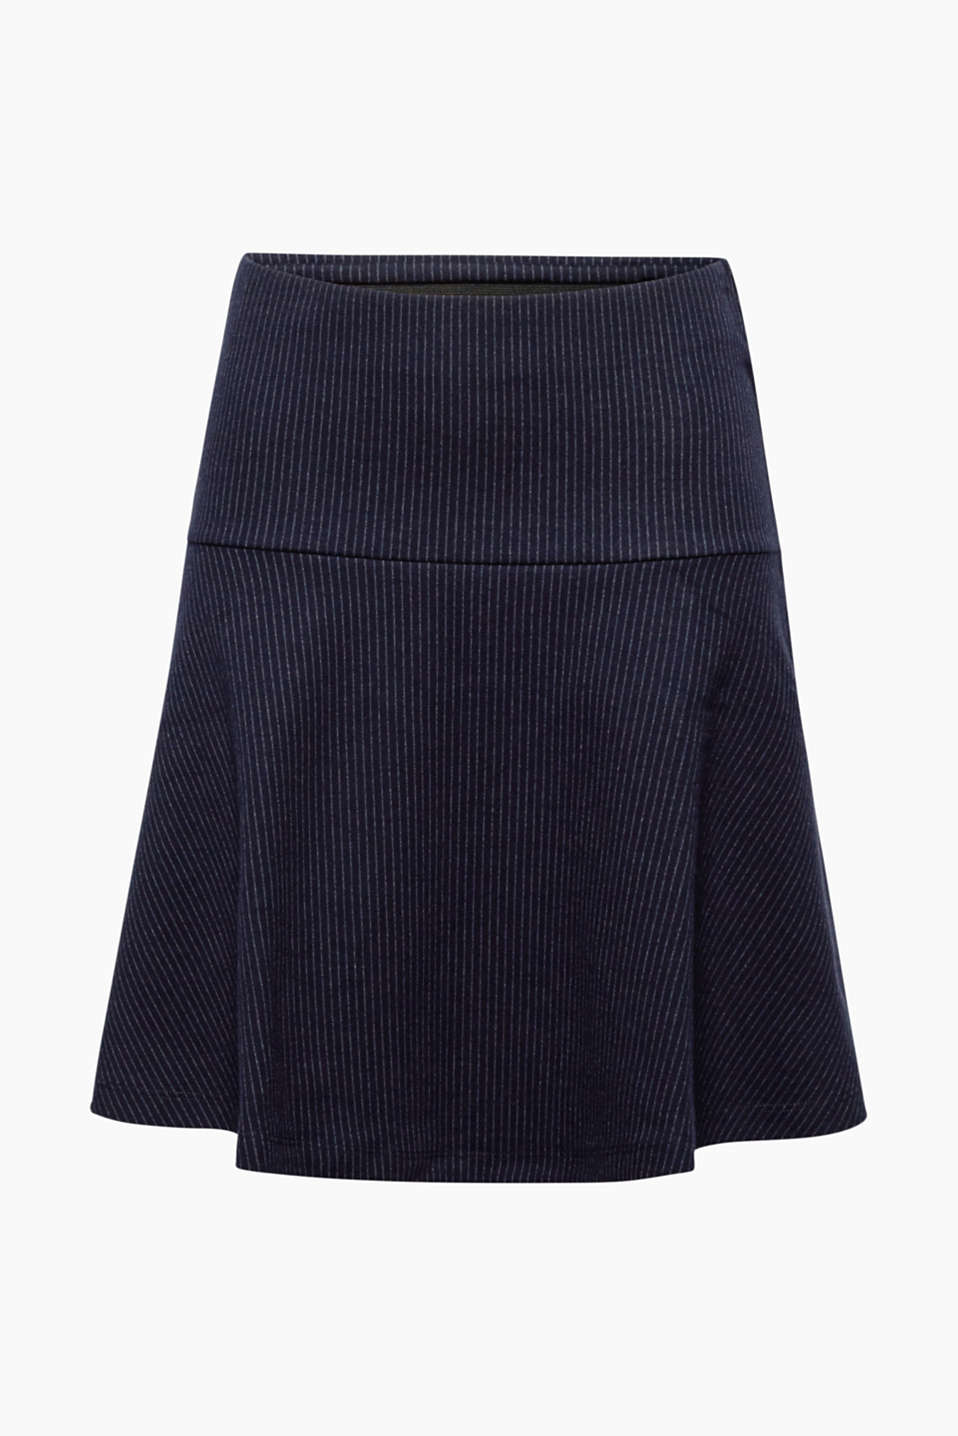 This comfortable jersey stretch skirt with fine pinstripes and an elasticated waistband swirls beautifully.